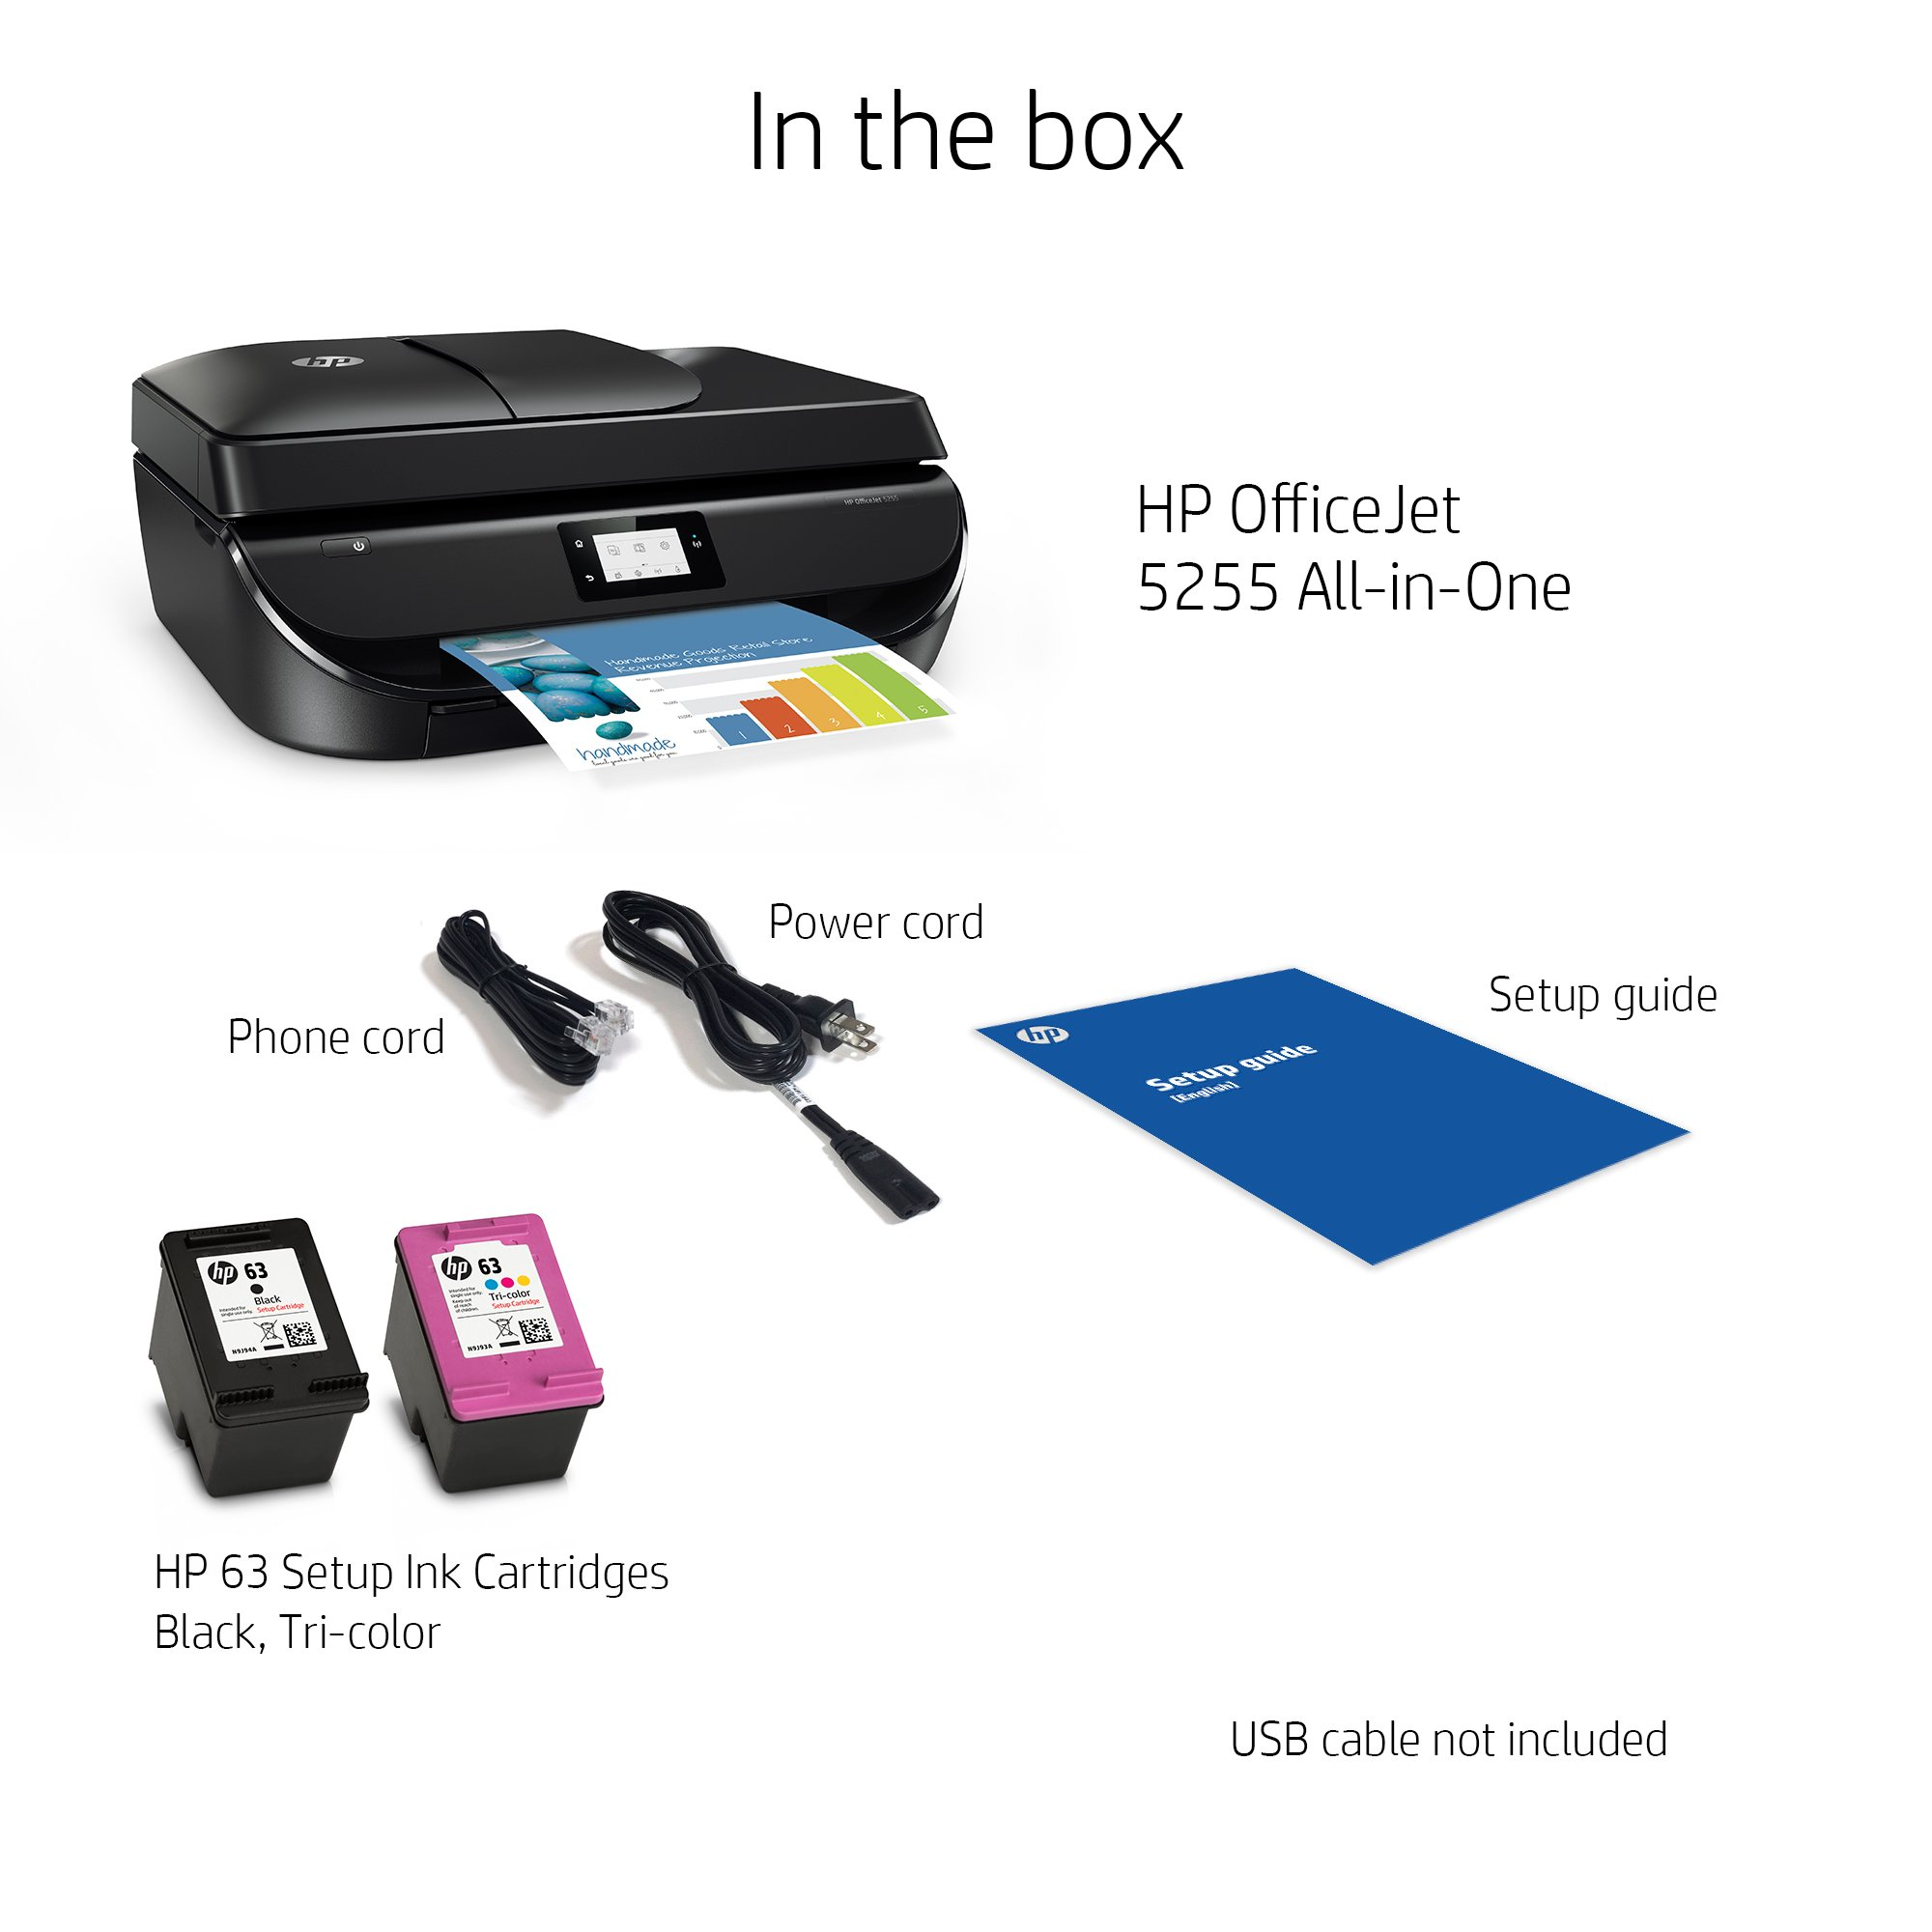 OfficeJet 5255 Wireless All-in-One Printer - Unboxed